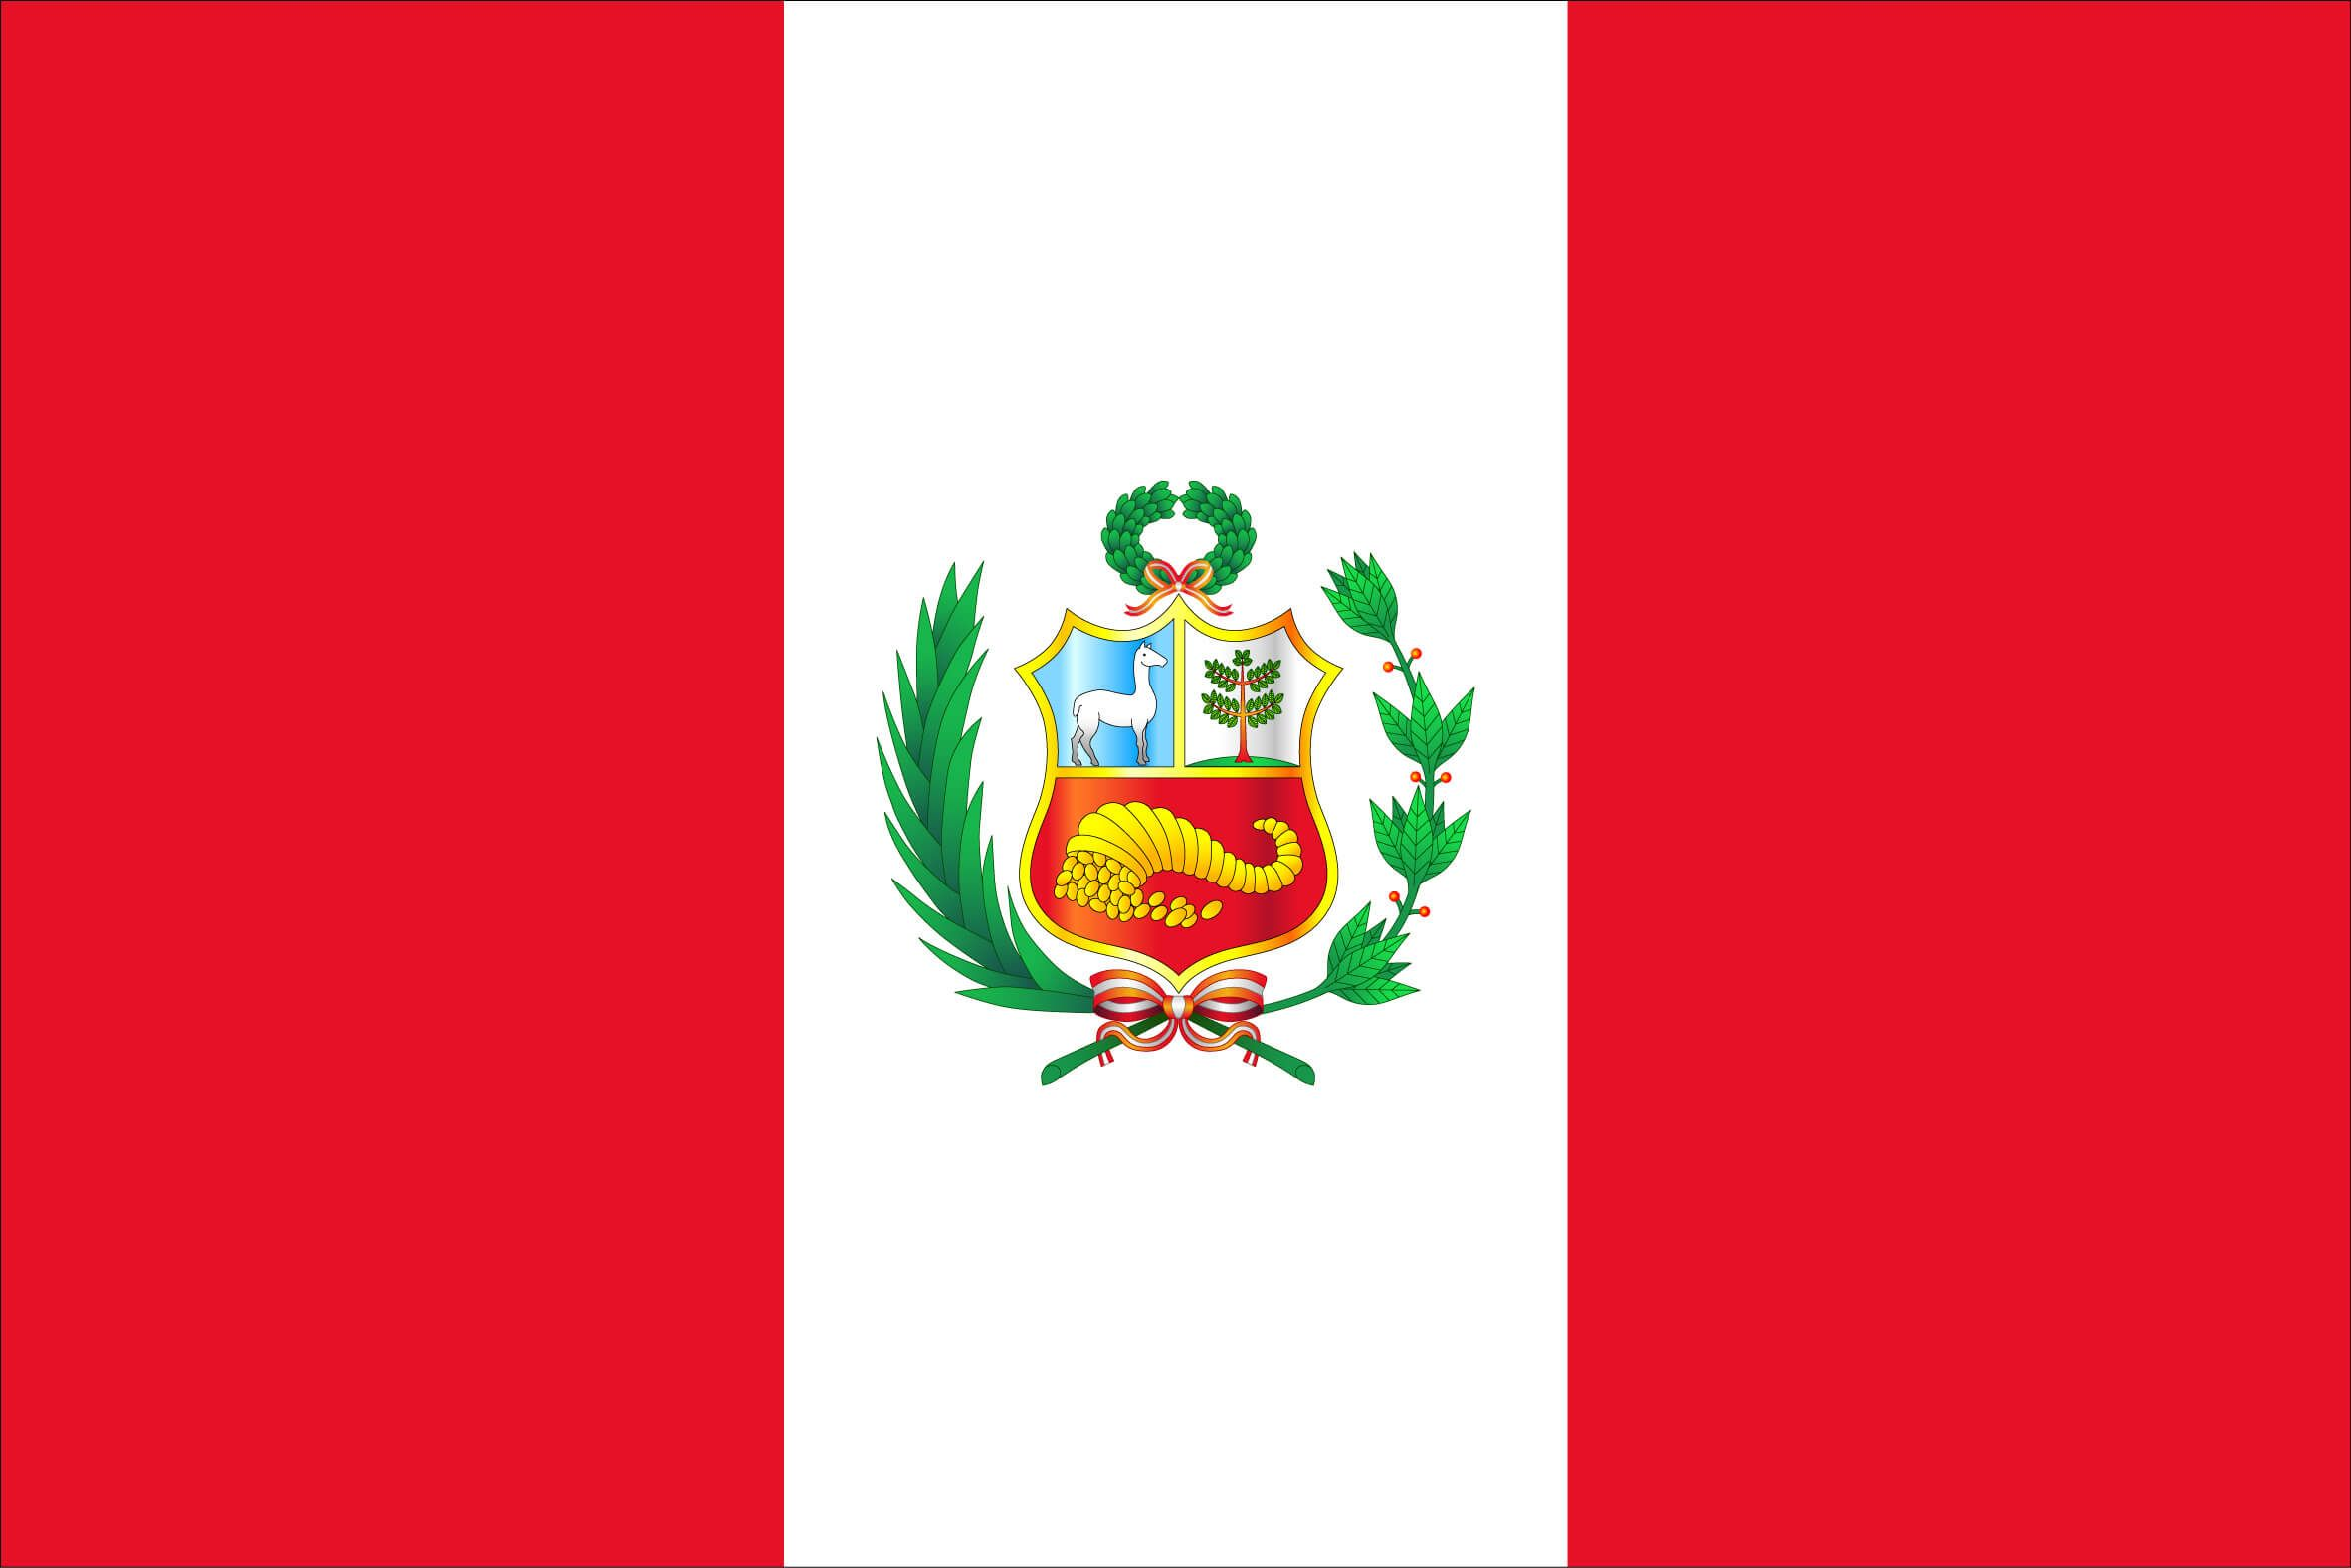 Peru flag colors peru flag meaning history flags pinterest peru flag colors peru flag meaning history buycottarizona